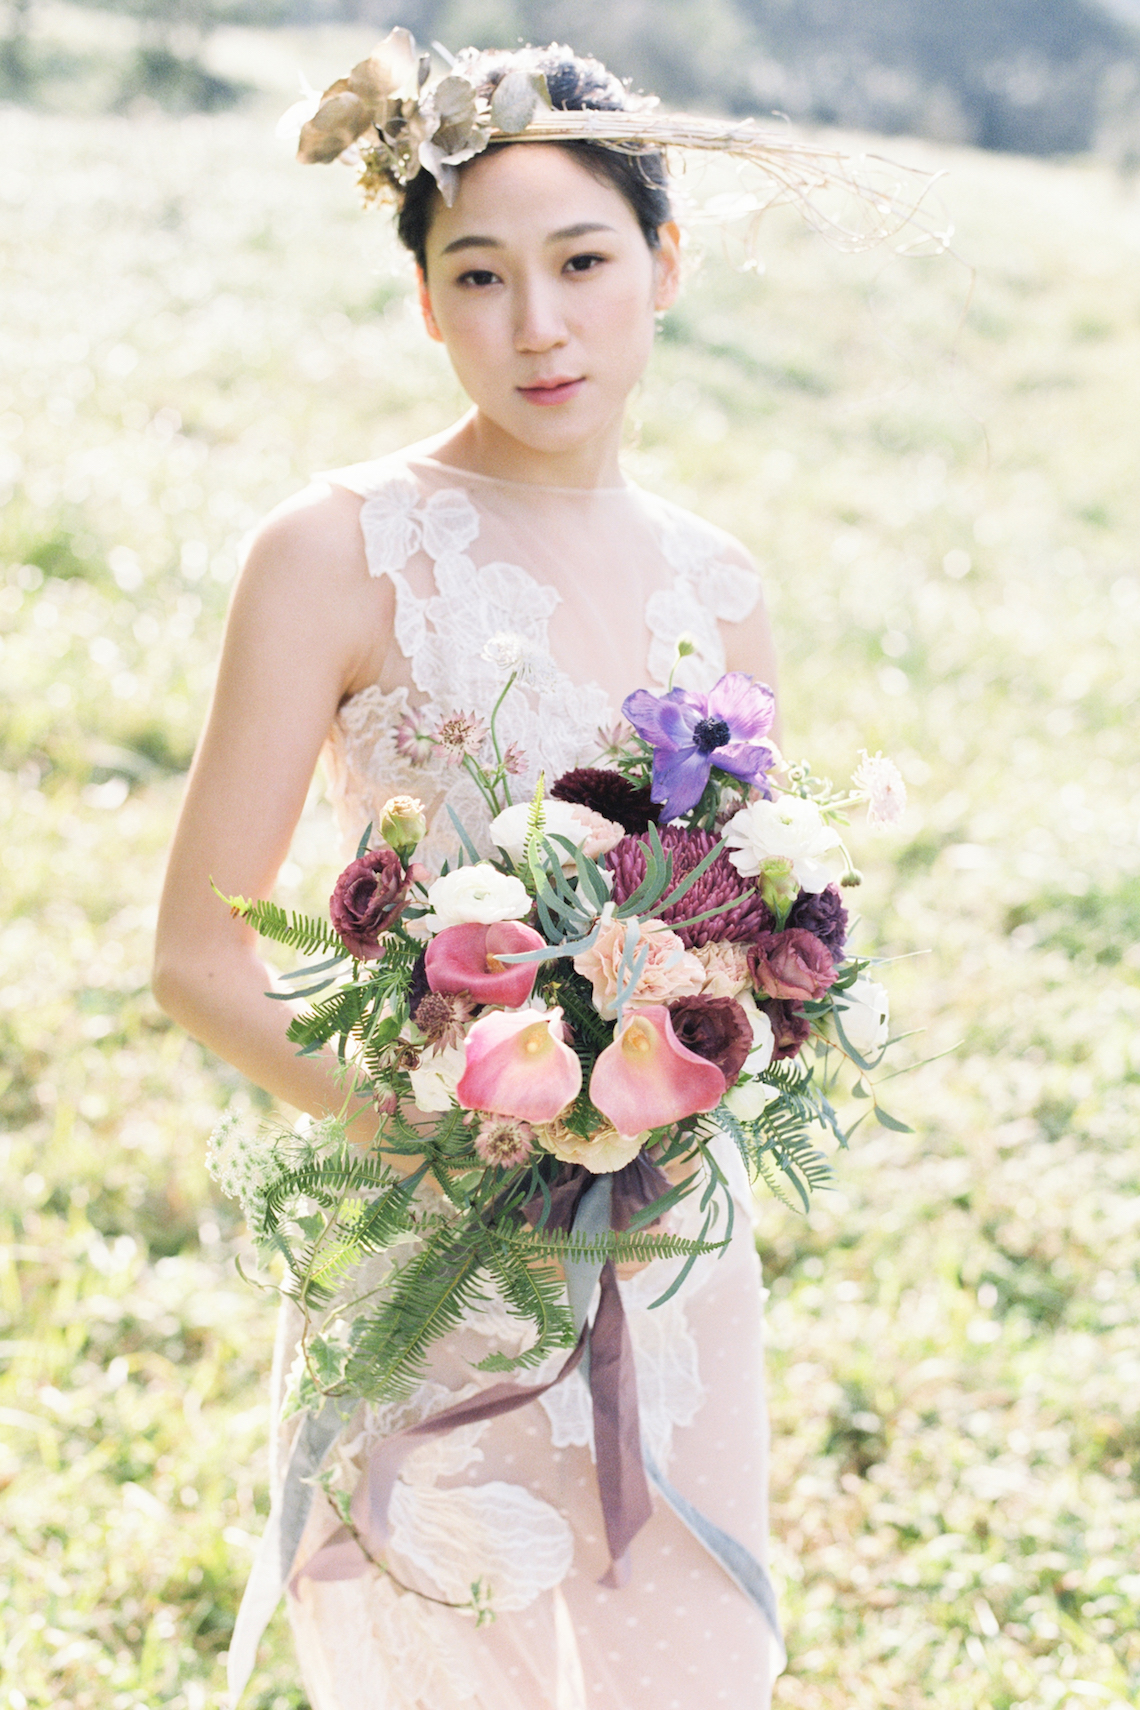 Whimsical Meadow Wedding Inspiration With Dried Florals | Olea & Fig Studio | The Stage Photography 15